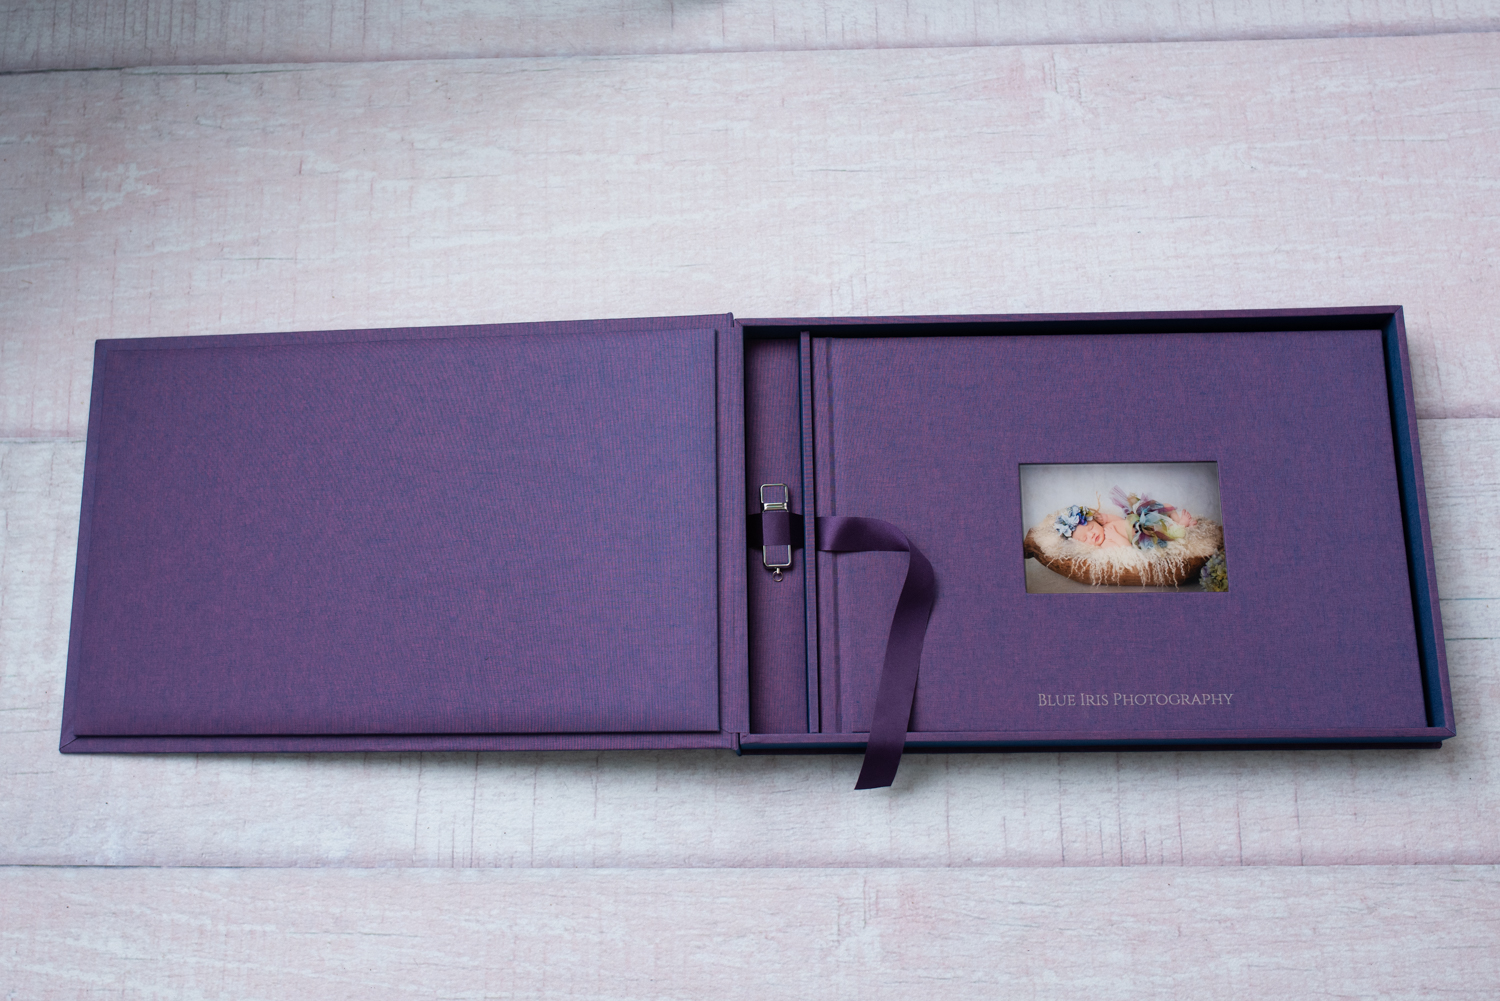 A 12x17 inch Photo Book Pro Set with handcrafted, customized cover comes with a matching keepsake box and flash drive.